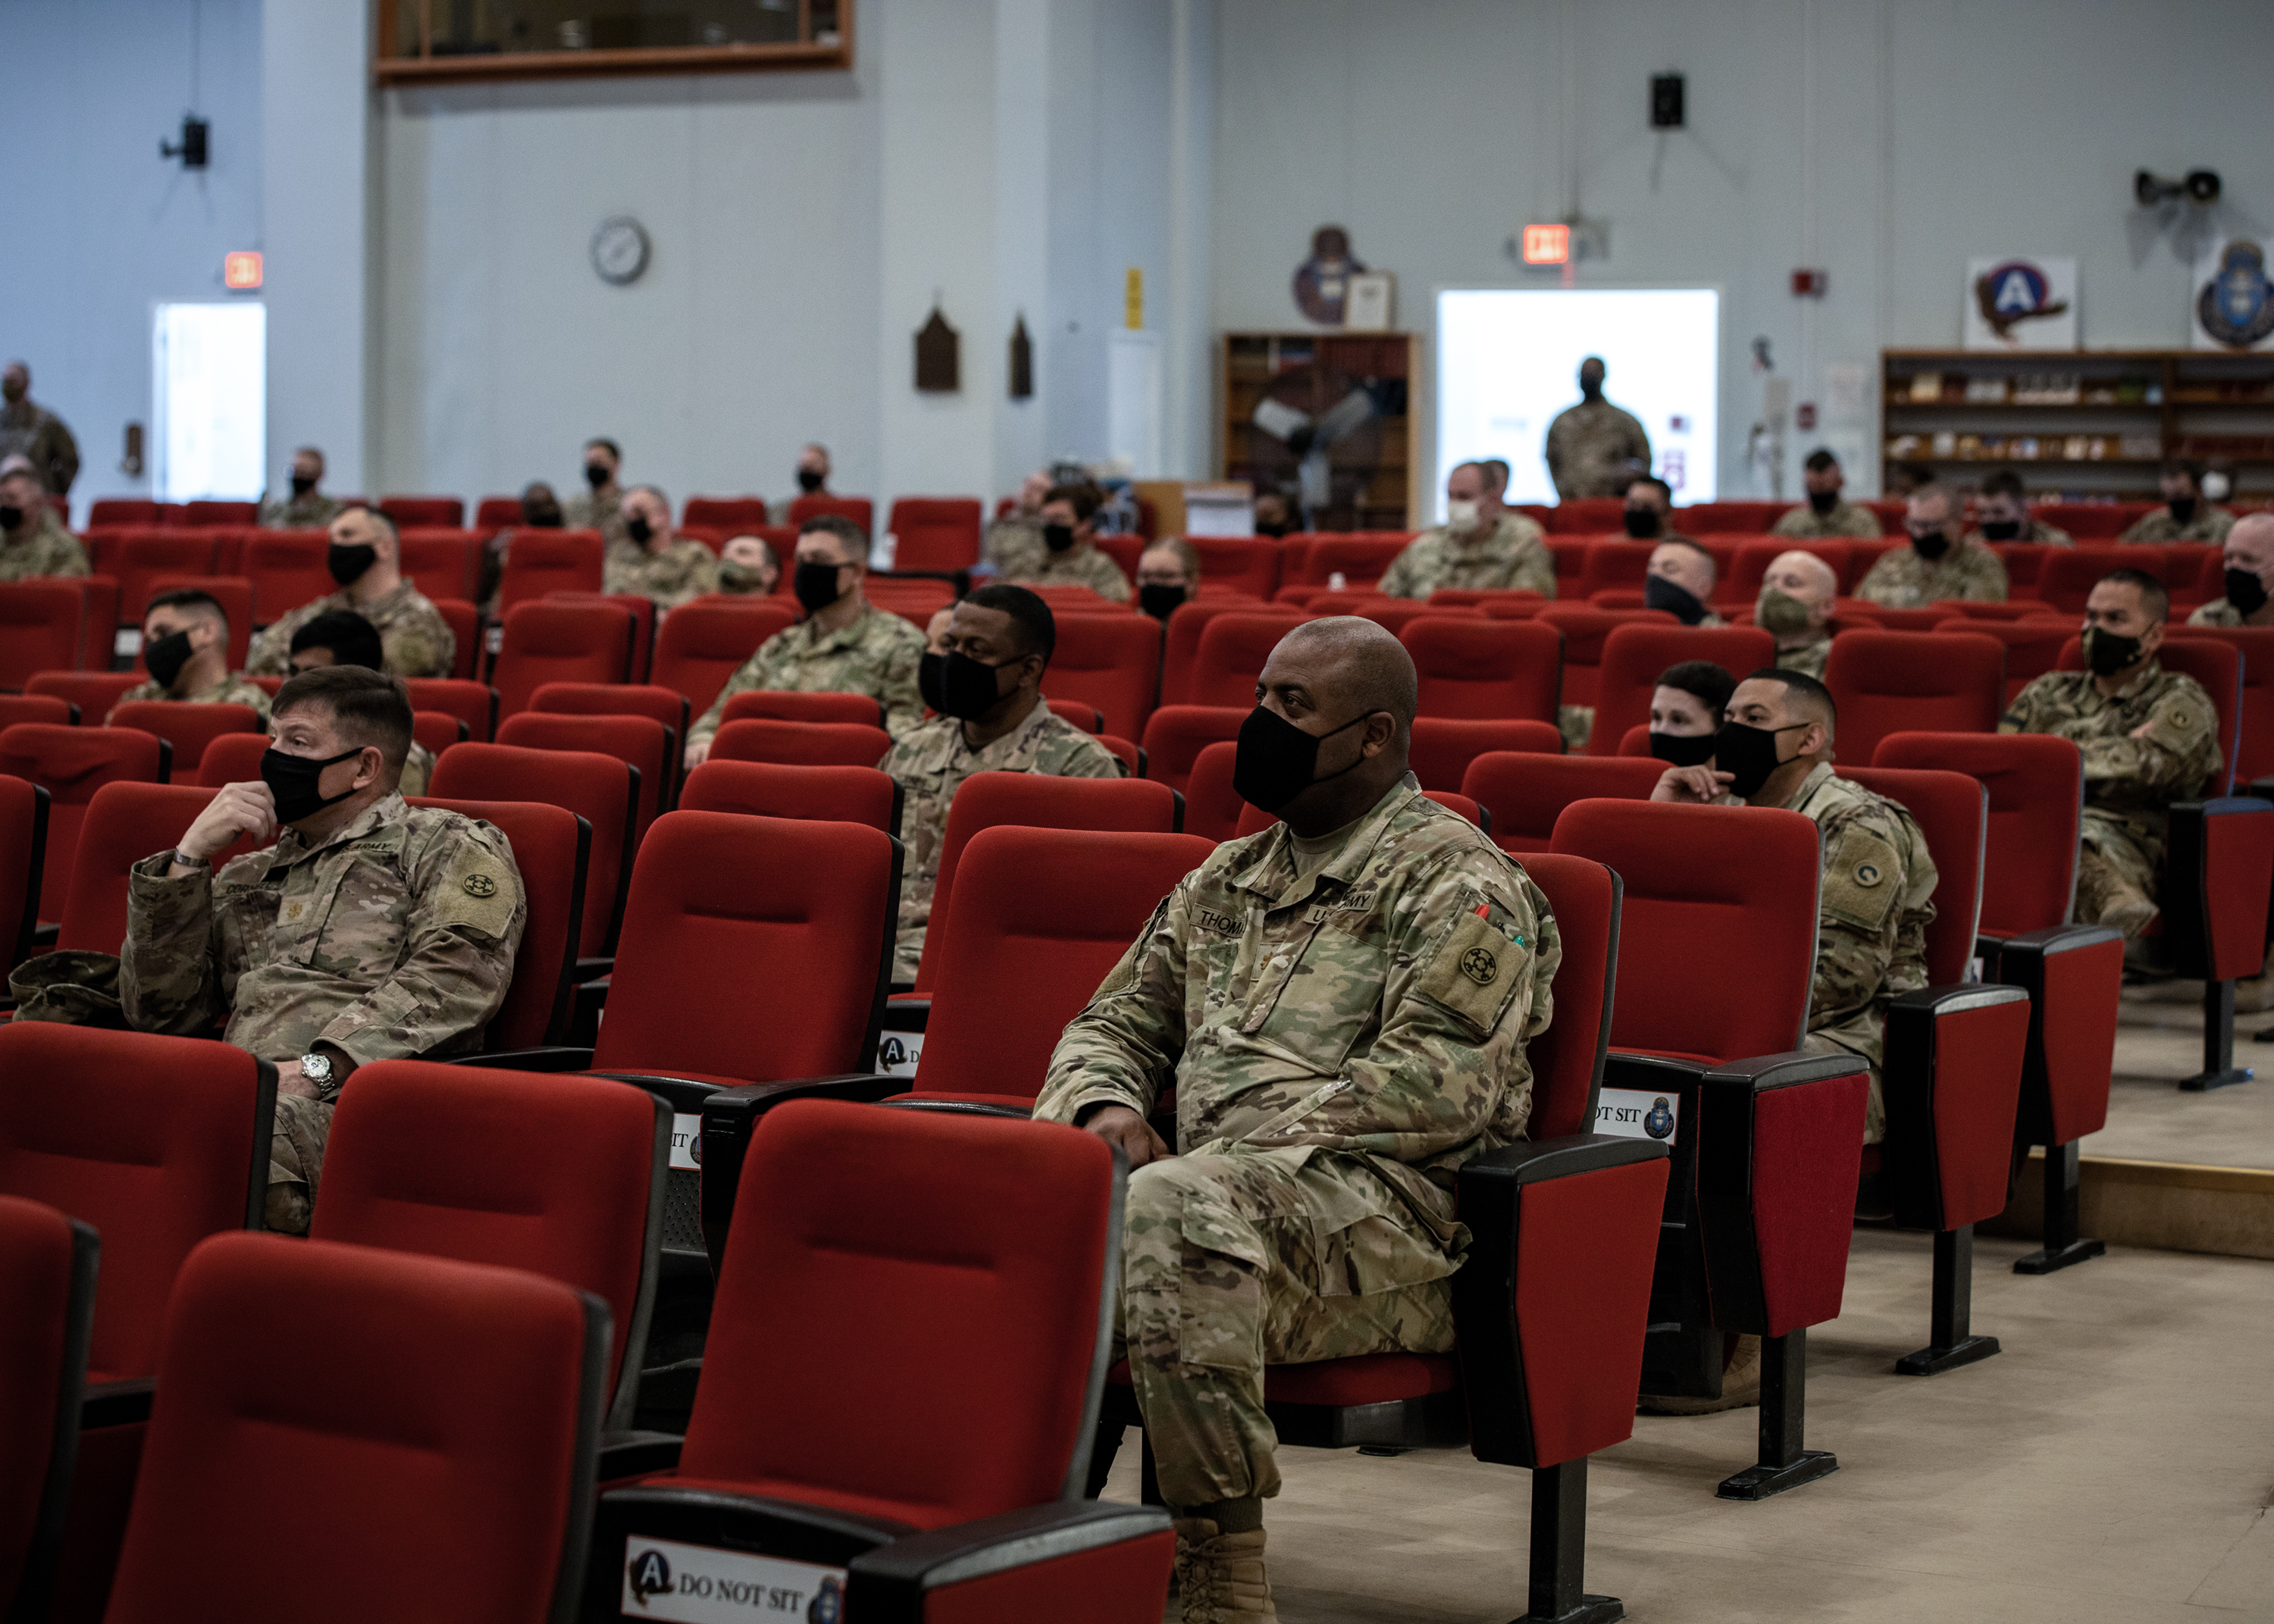 Soldiers with the 1st Theater Sustainment Command participate in an extremism stand-down at Camp Arifjan, Kuwait, March 16, 2021. The stand-down follows the guidance given by Secretary of Defense Lloyd Austin that directs commanding officers and supervisors at every level conduct extremism training with their personnel. (U.S. Army Photo by Spc. Zoran Raduka 1st TSC Public Affairs)